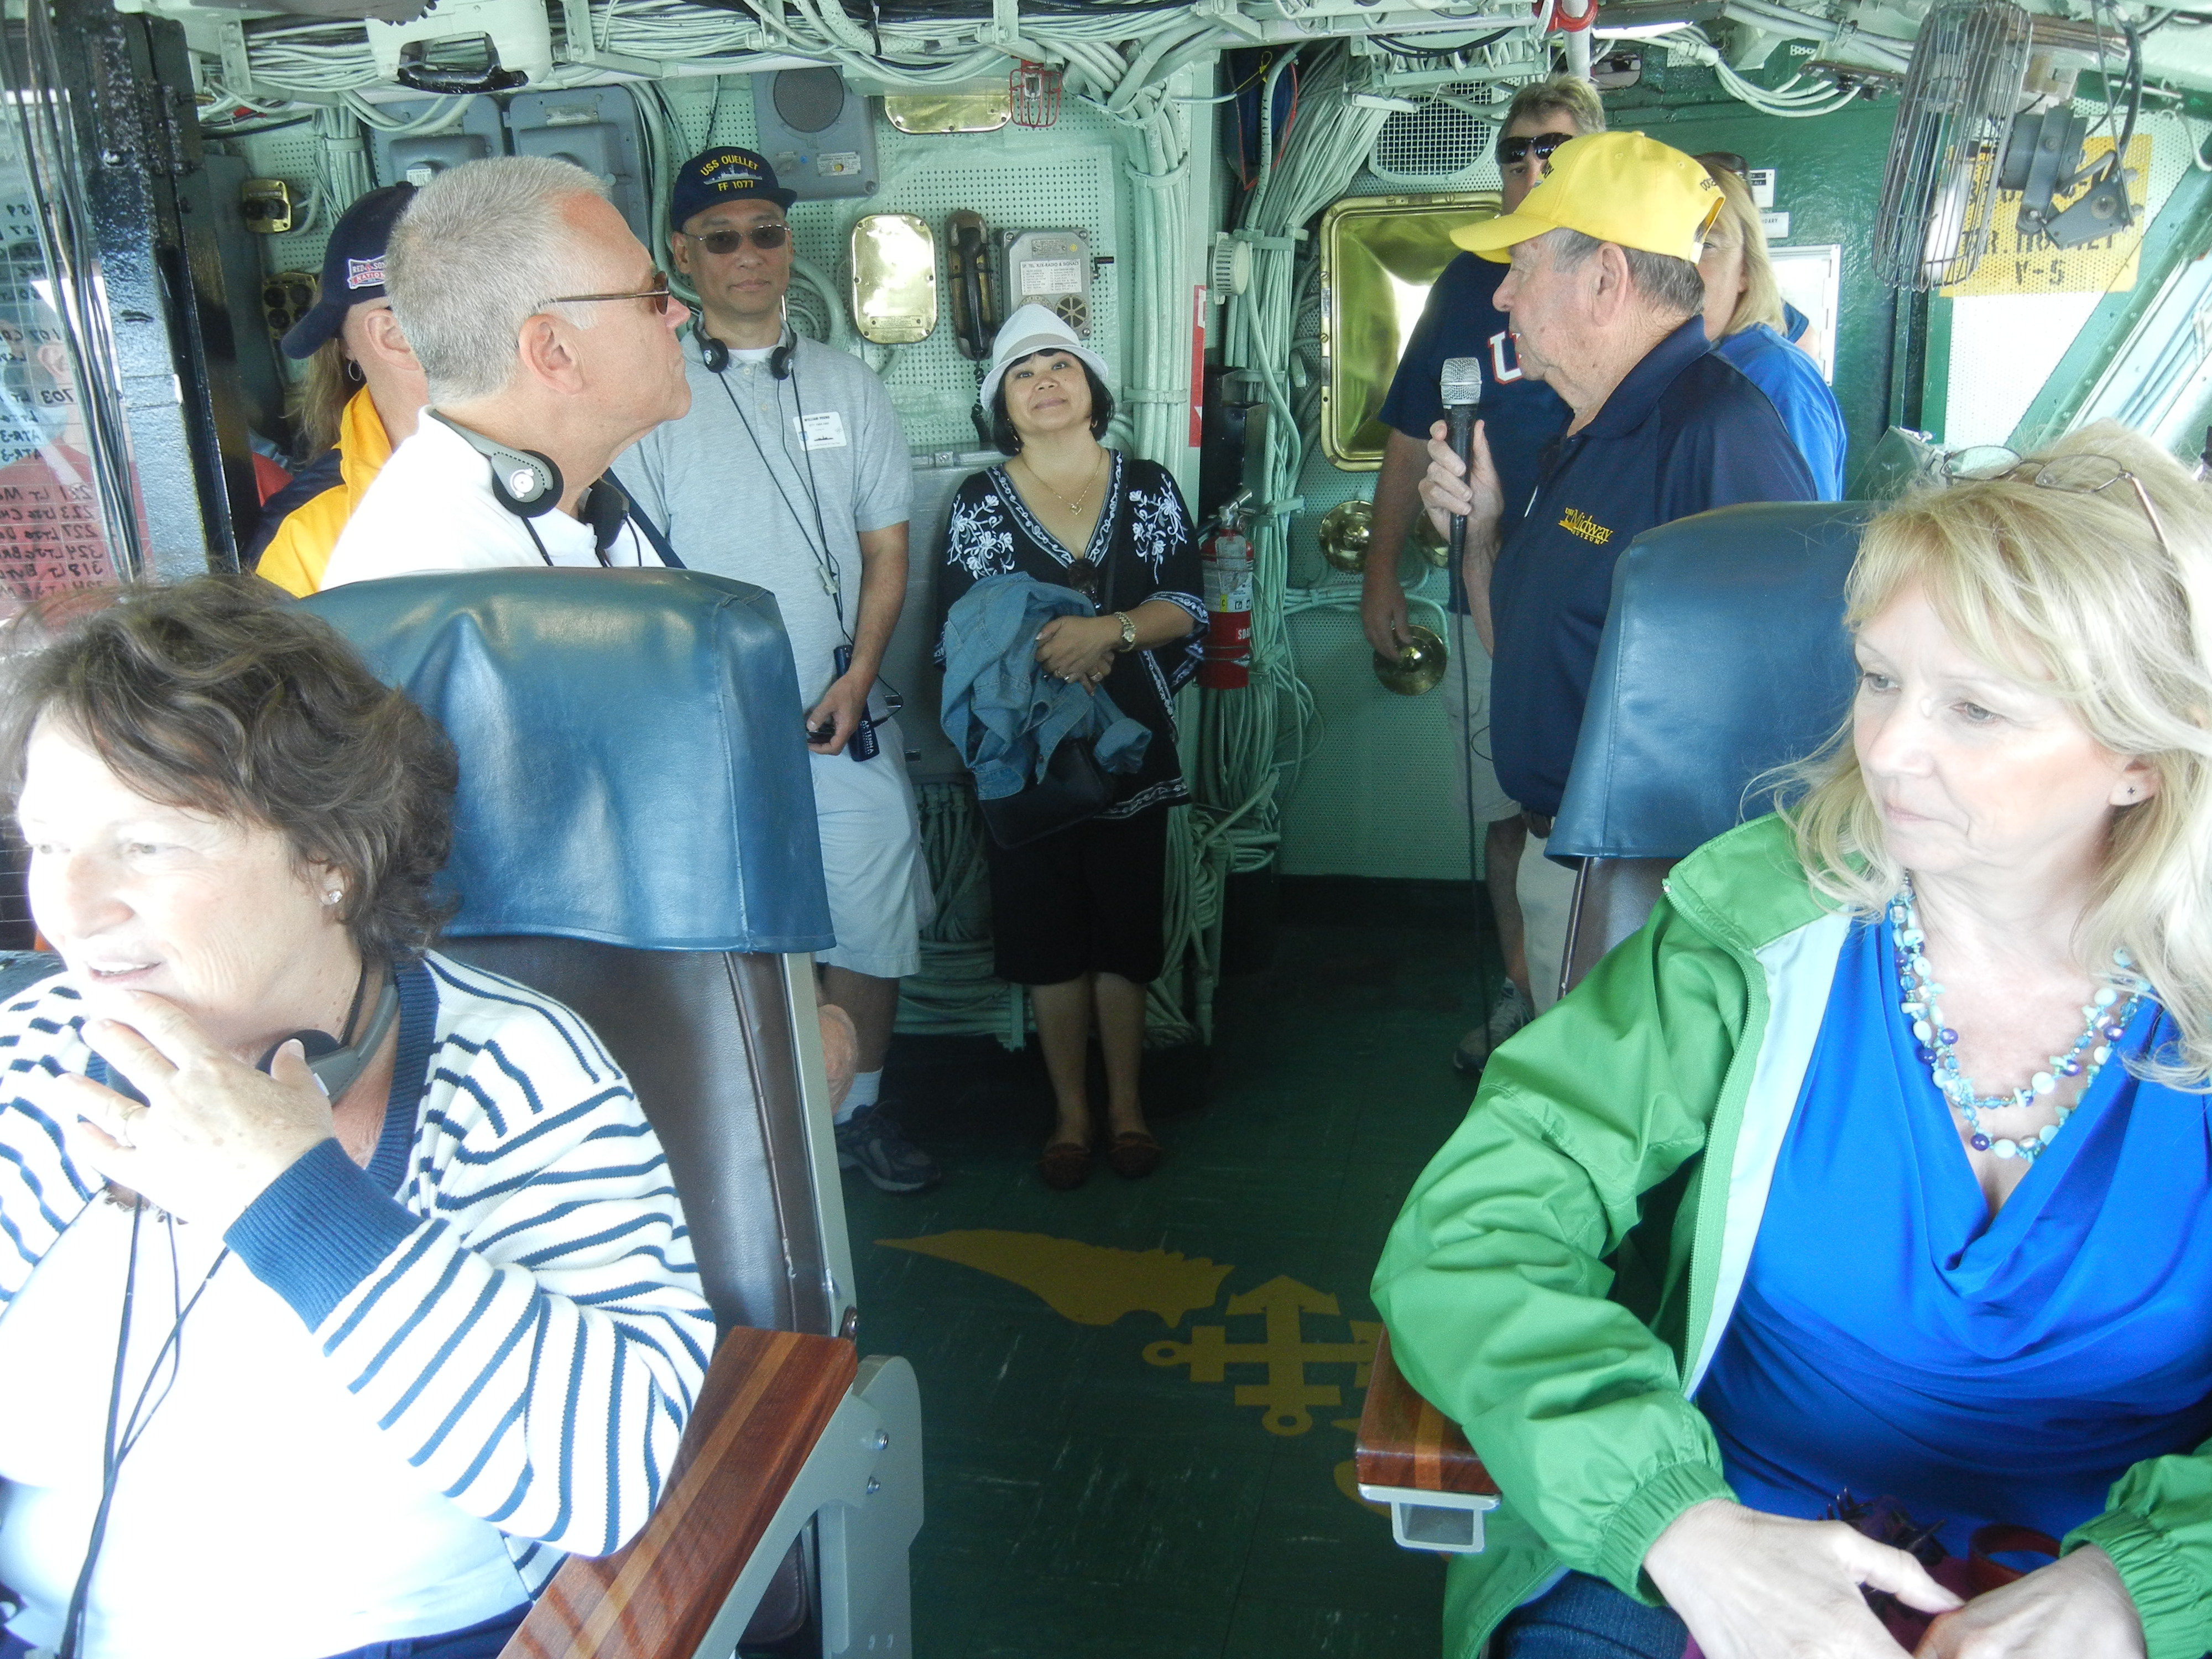 2013-09-21 1157 MIDWAY(CROSSAN2447